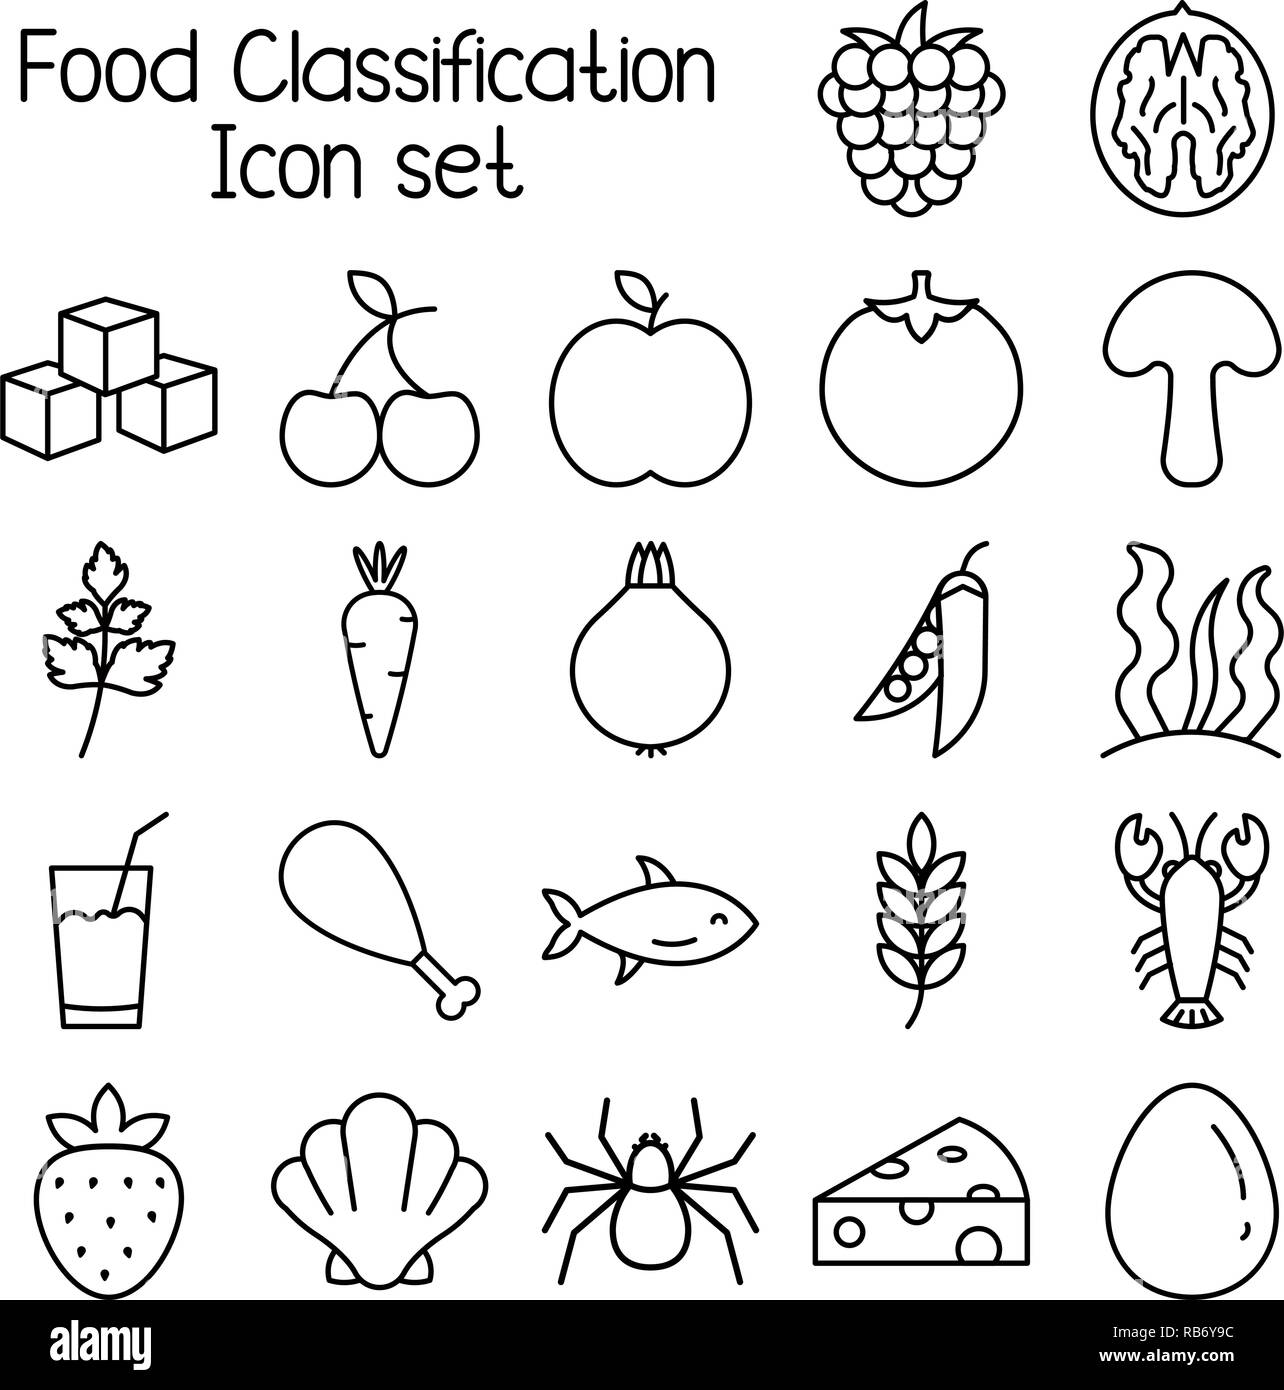 Food classification icon set, meal vector symbols. - Stock Vector